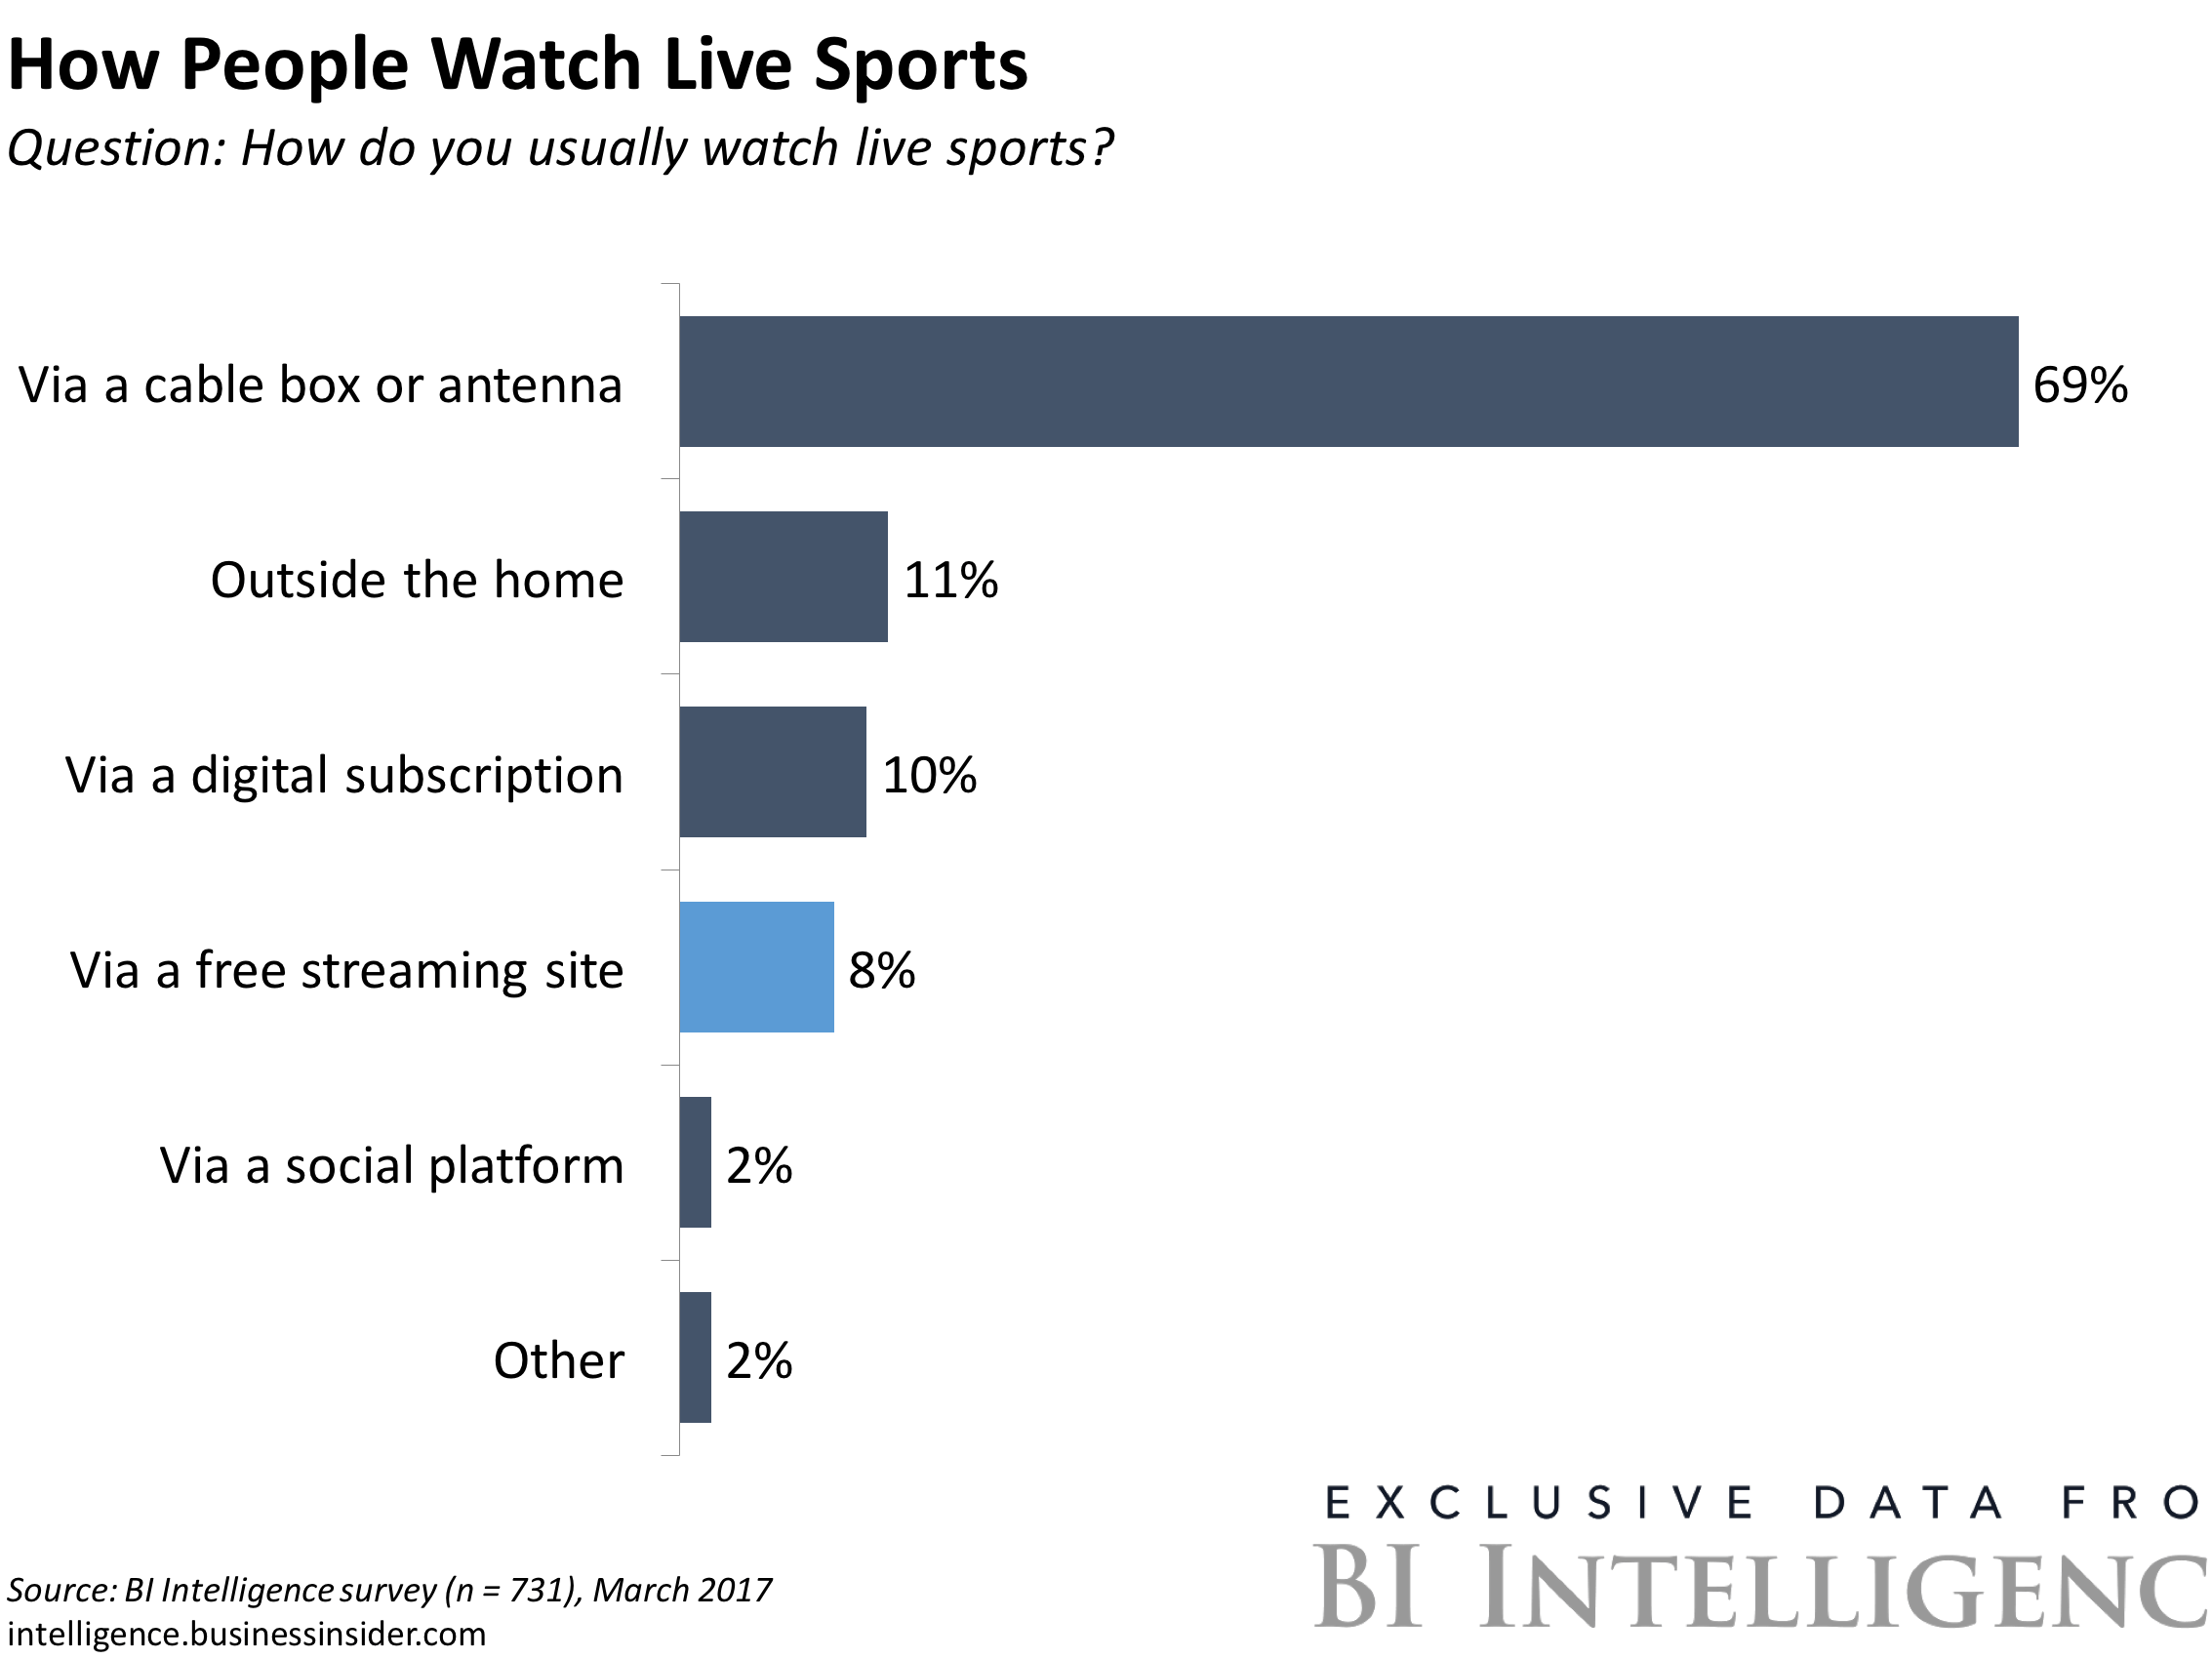 THE DIGITAL DISRUPTION OF LIVE SPORTS: A deep dive into the fall of TV's most lucrative programming (FB, TWTR, AMZN, DIS)